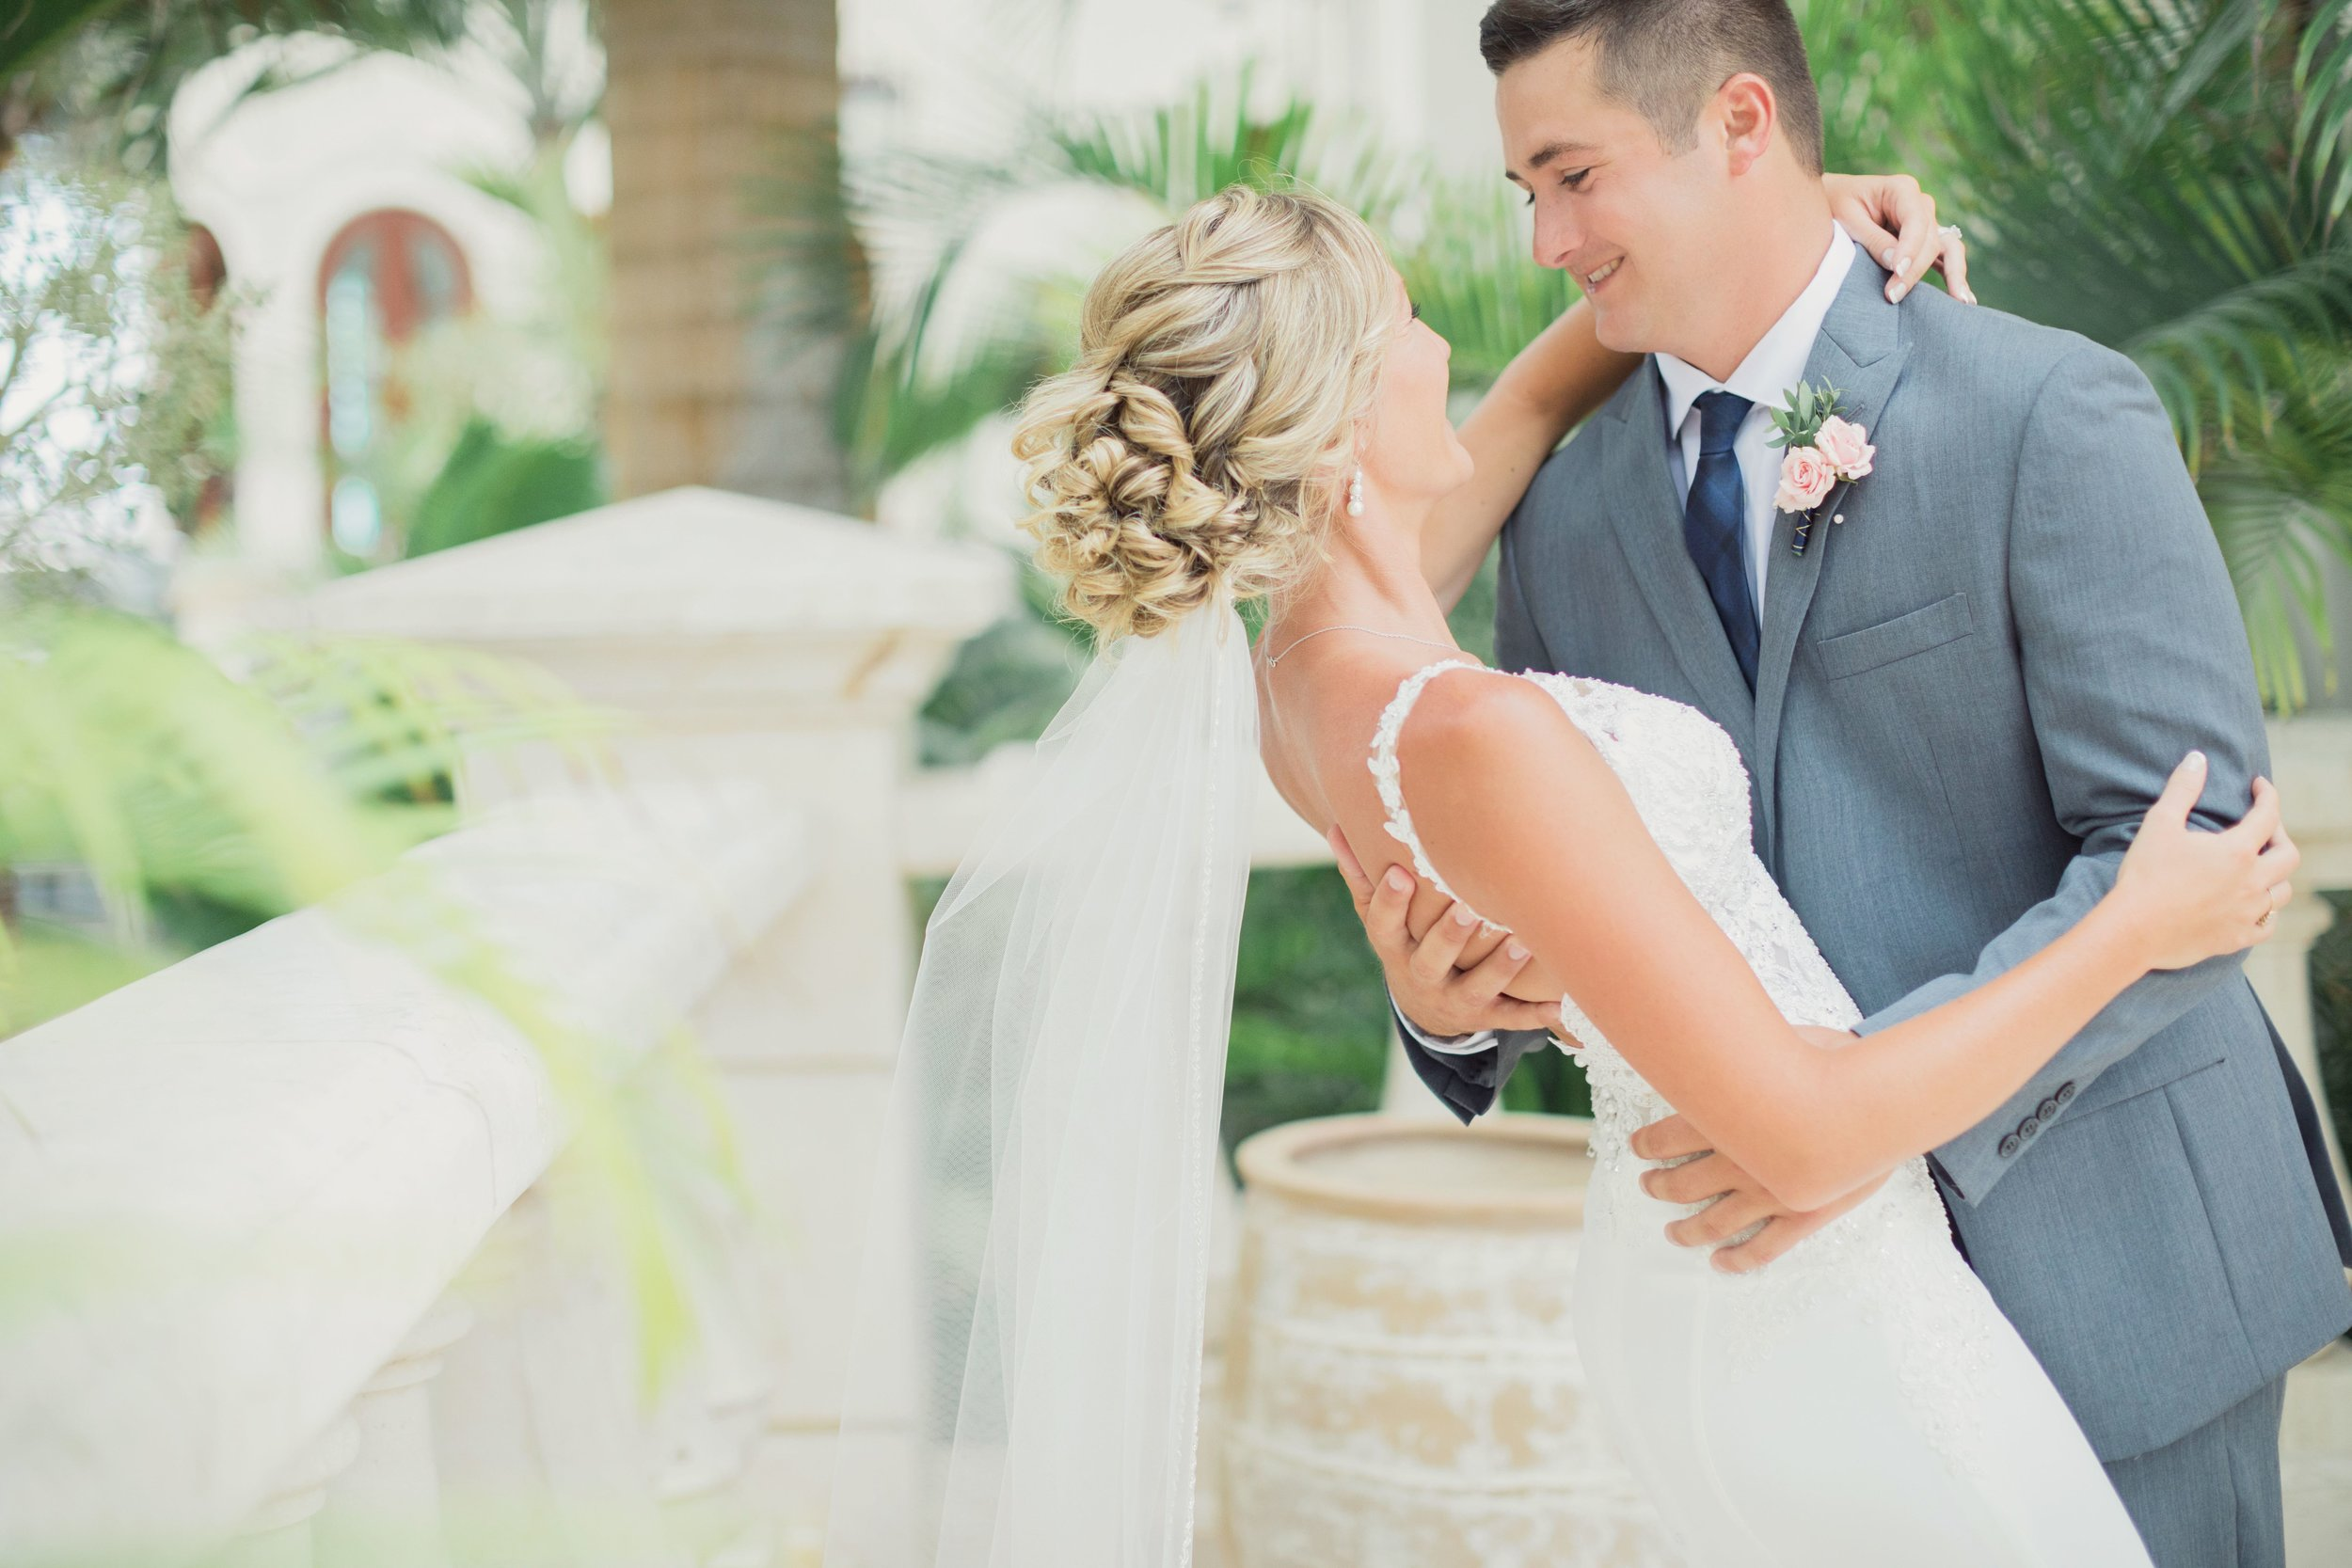 cancun-wedding-venue-villa-la-joya-80 copy-websize.jpg